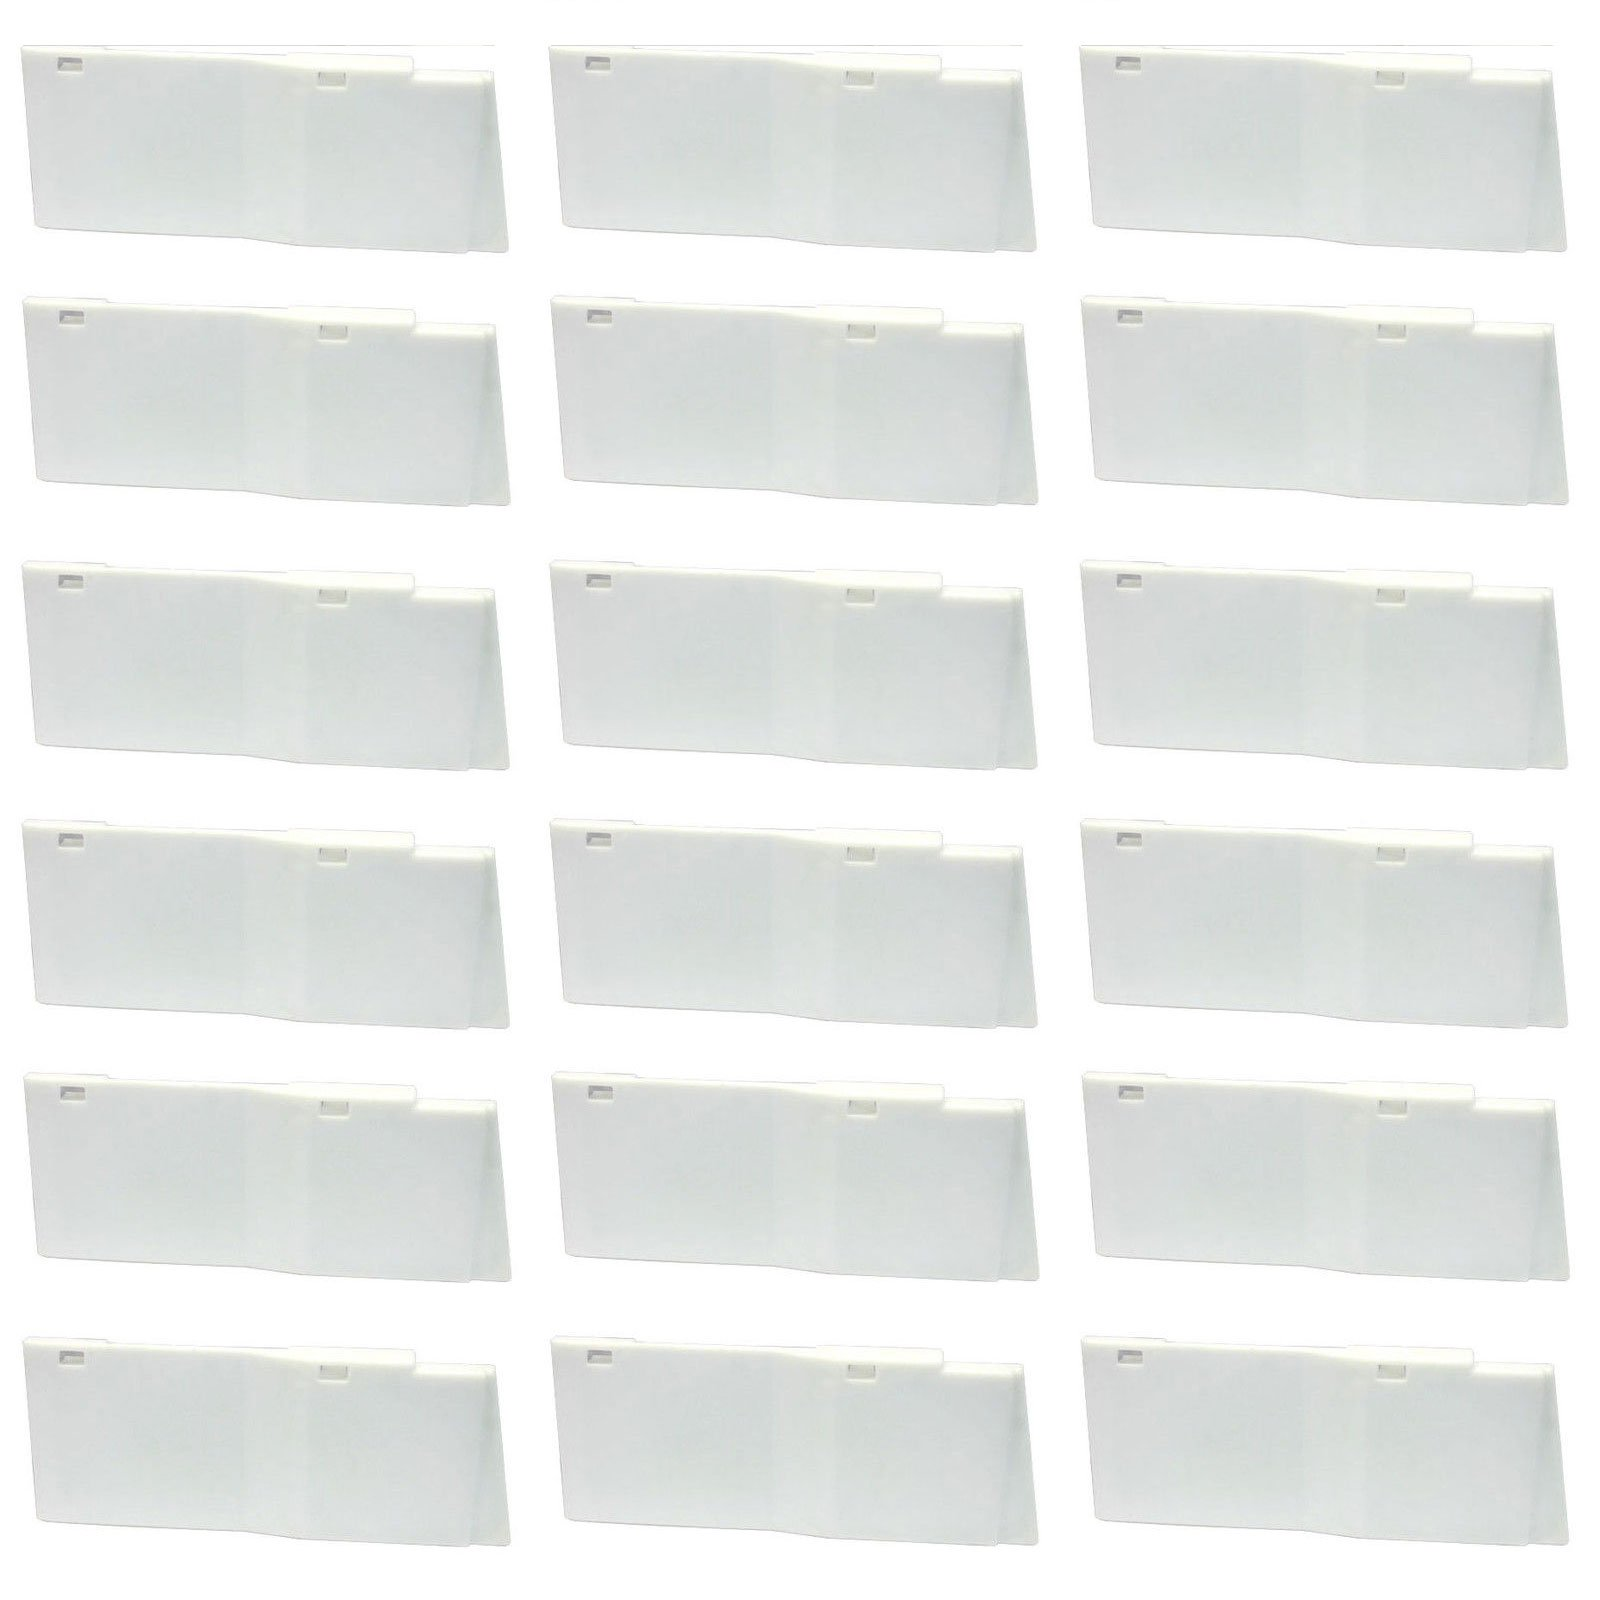 Dixie Narco 20oz Bottle Shims for 5591 Glass Front Vending Machine Lot of 18 by Dixie Narco